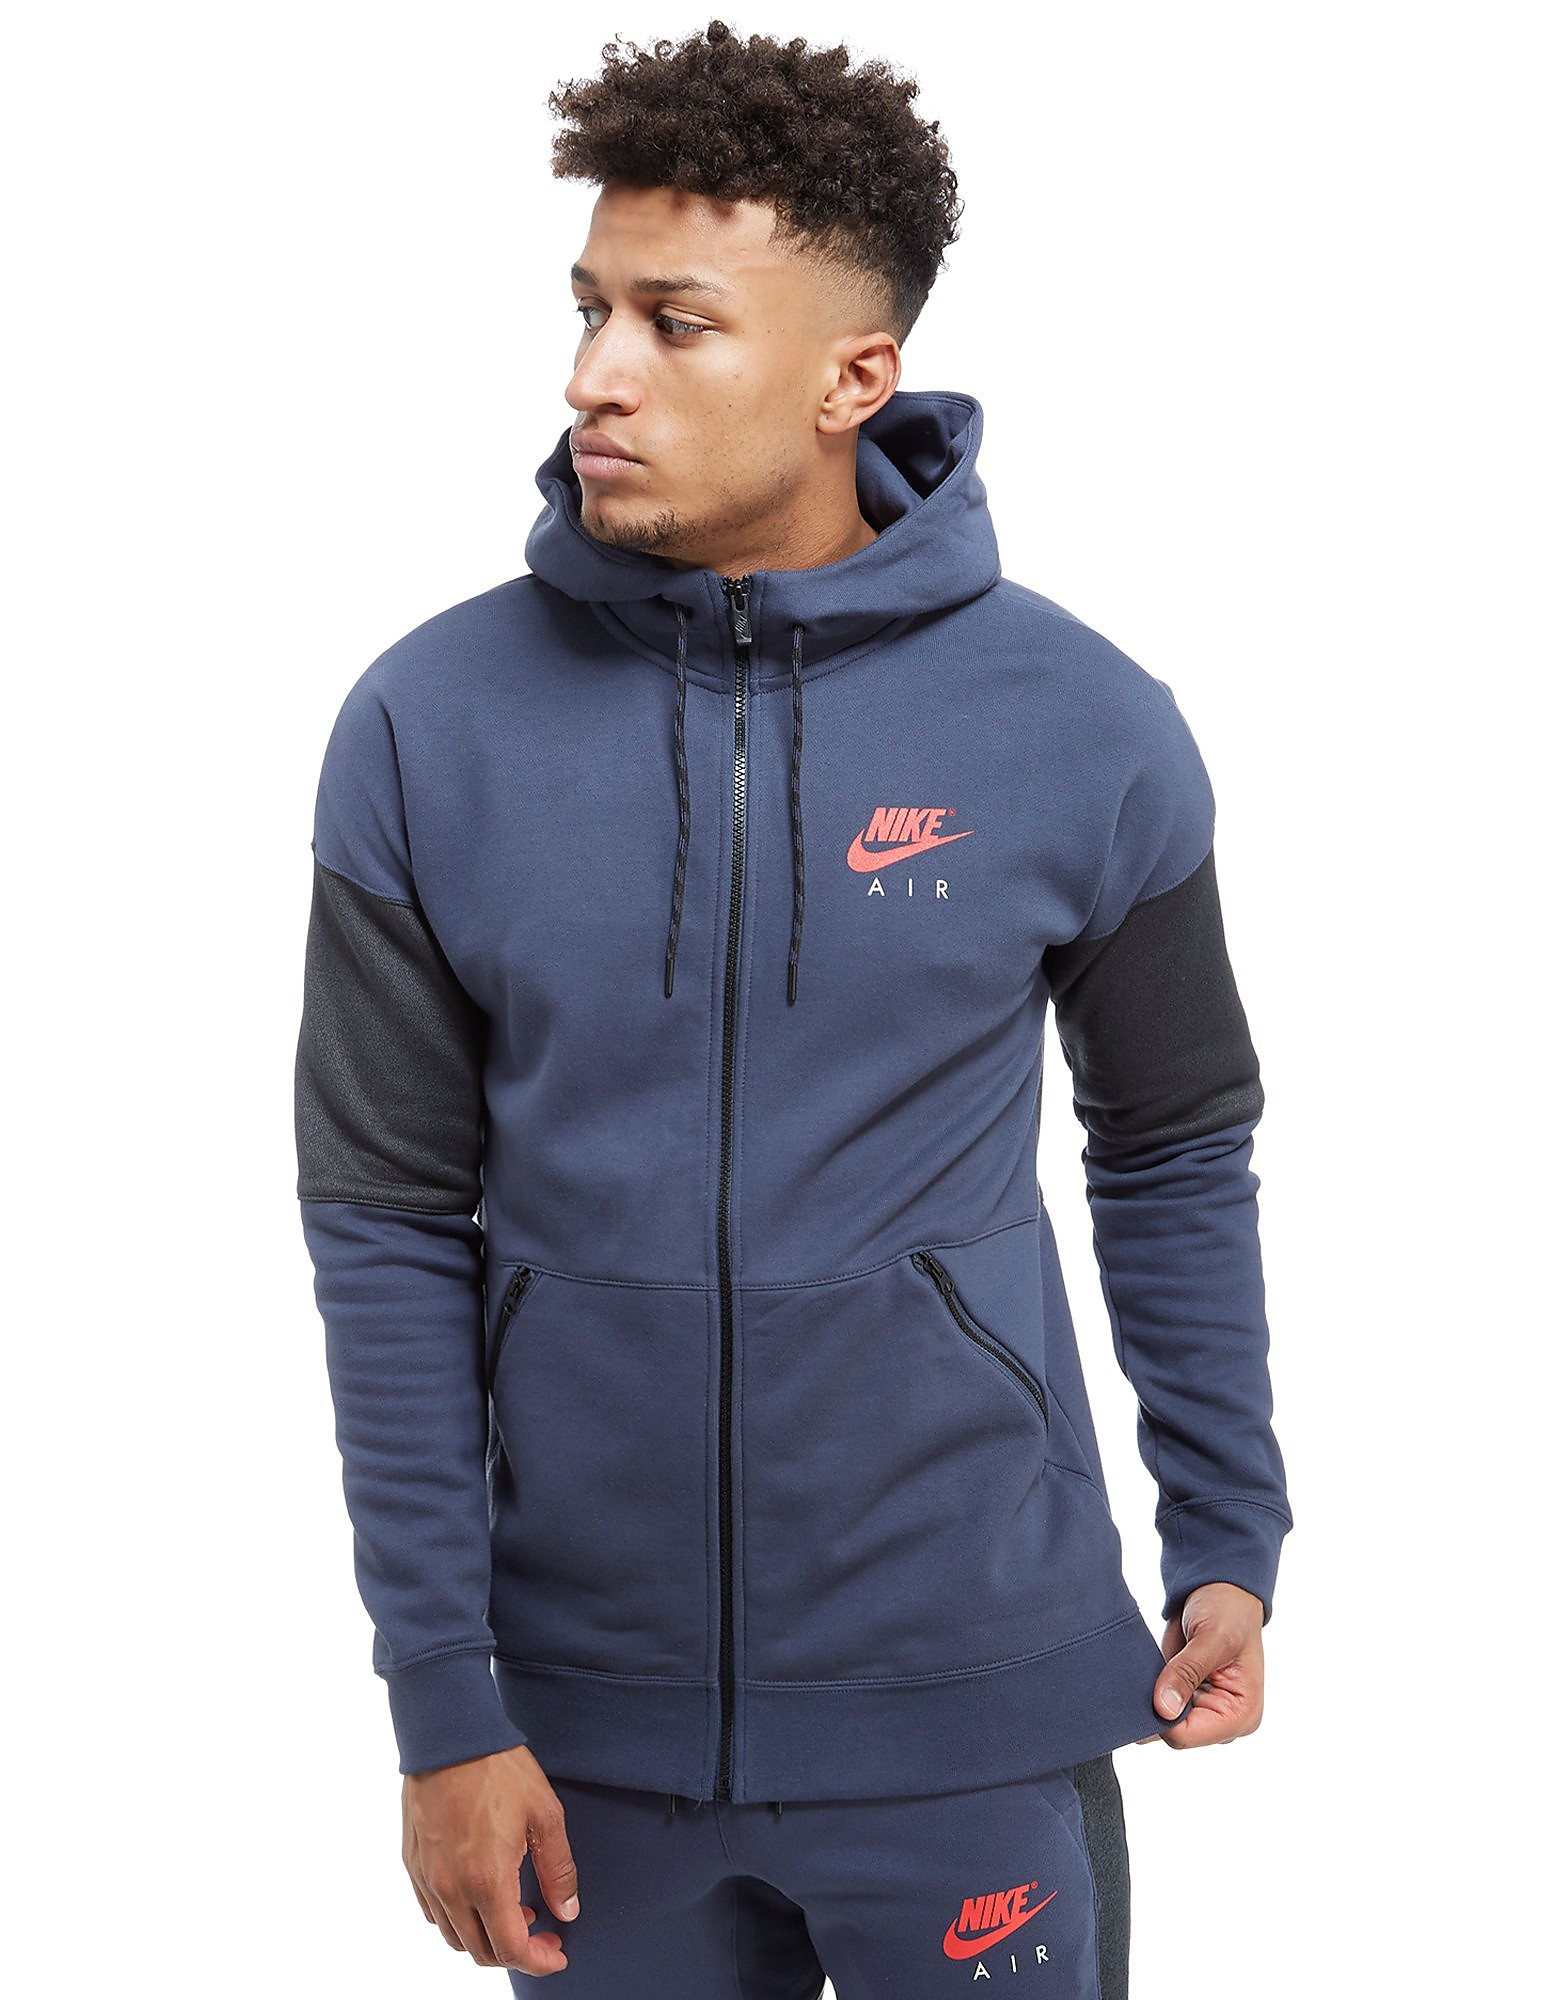 Nike Air Full Zip Hoody